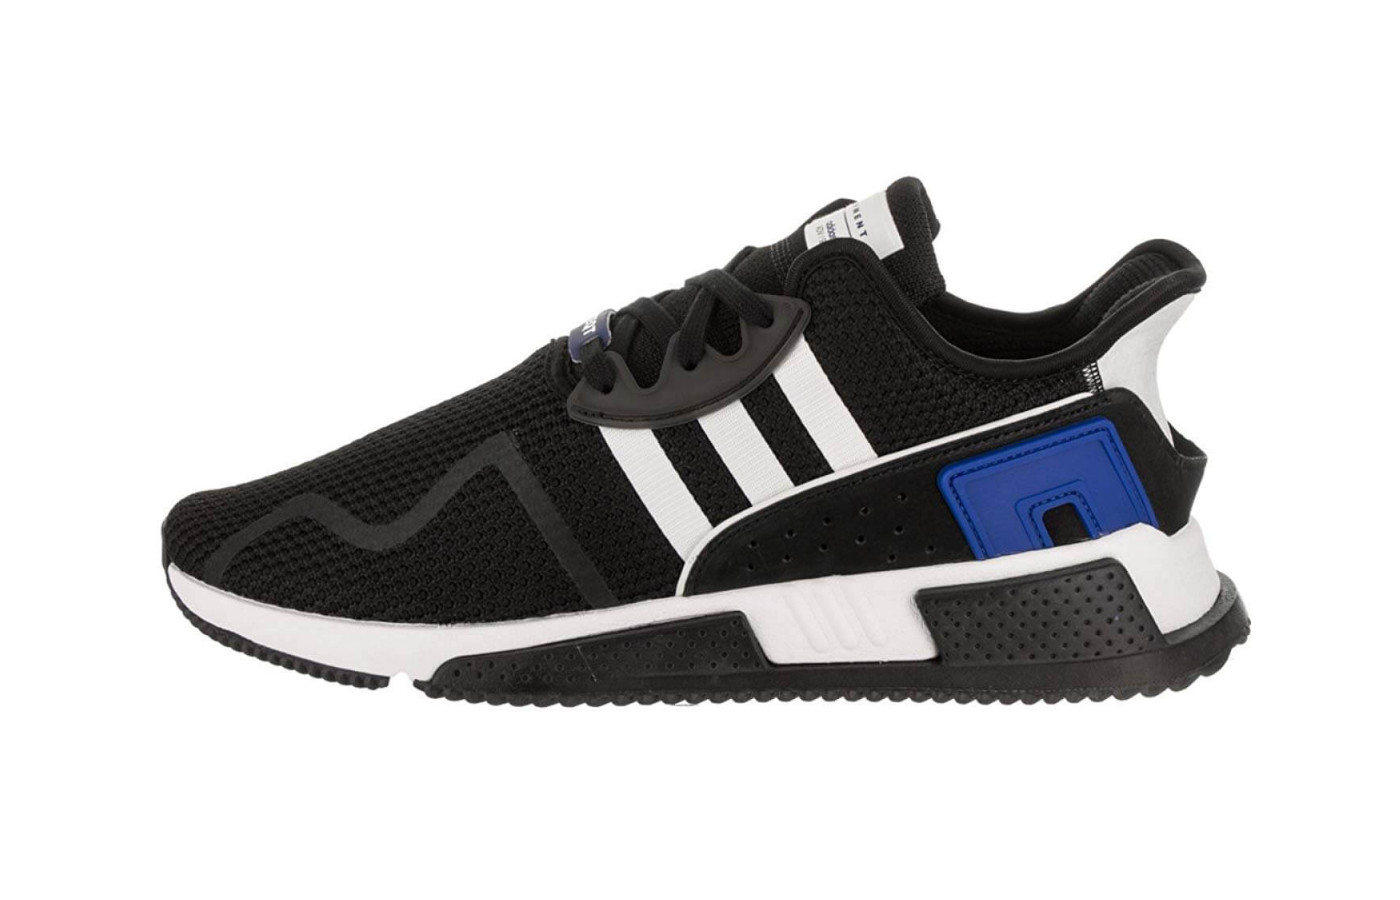 a8fb06e7f07f Adidas EQT Cushion ADV Review - Buy or Not in May 2019